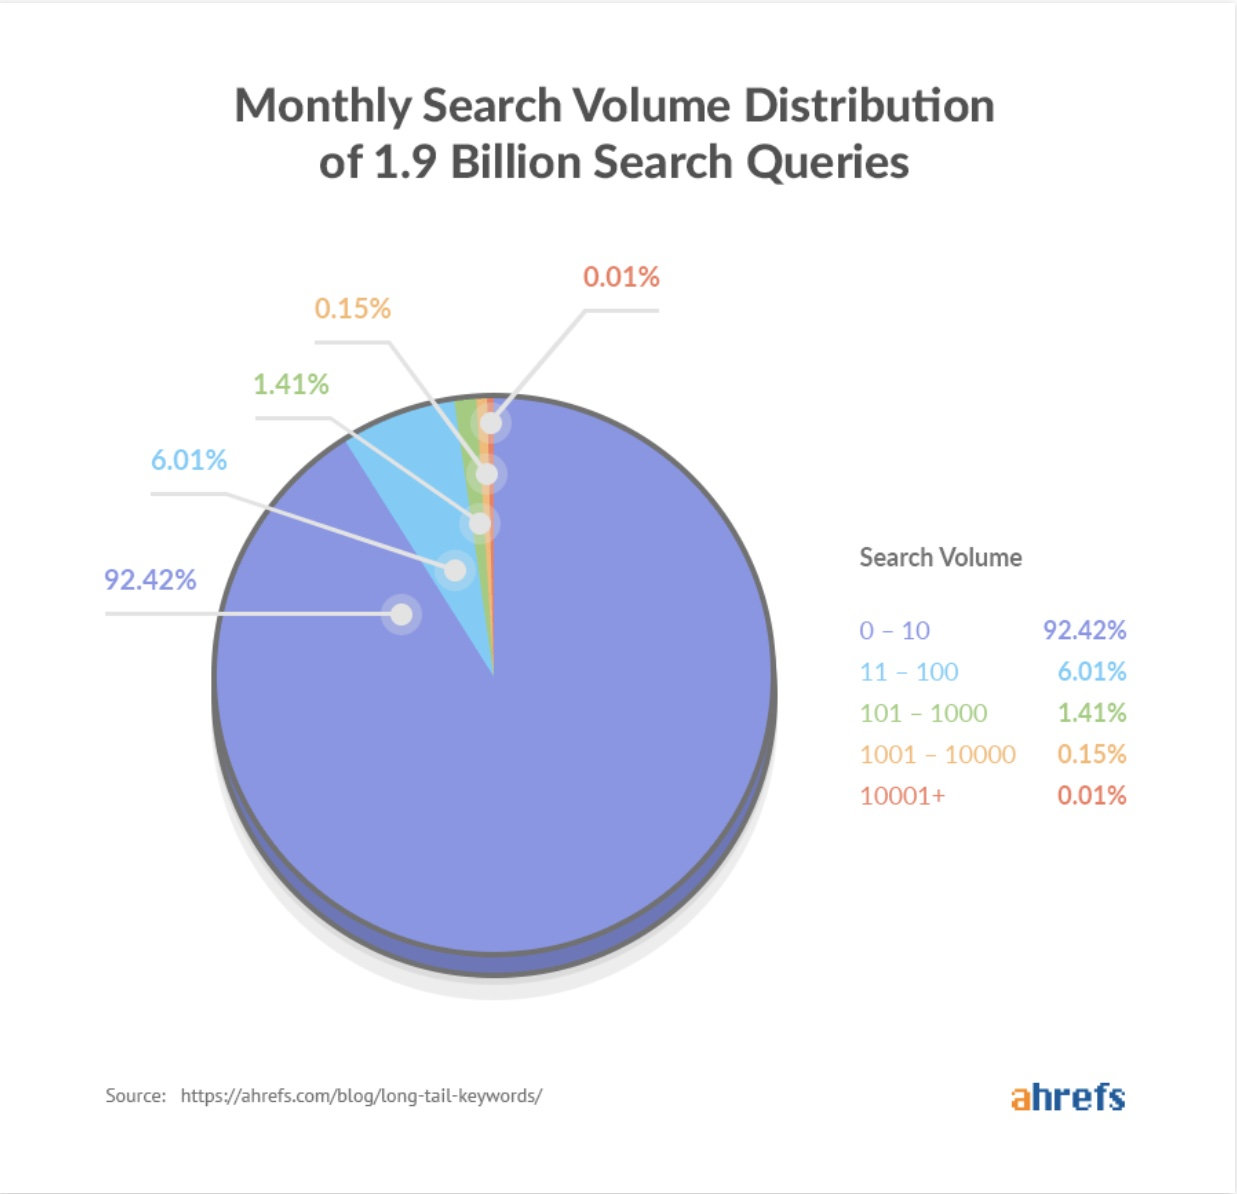 search volume distribution of 1.9bn queries